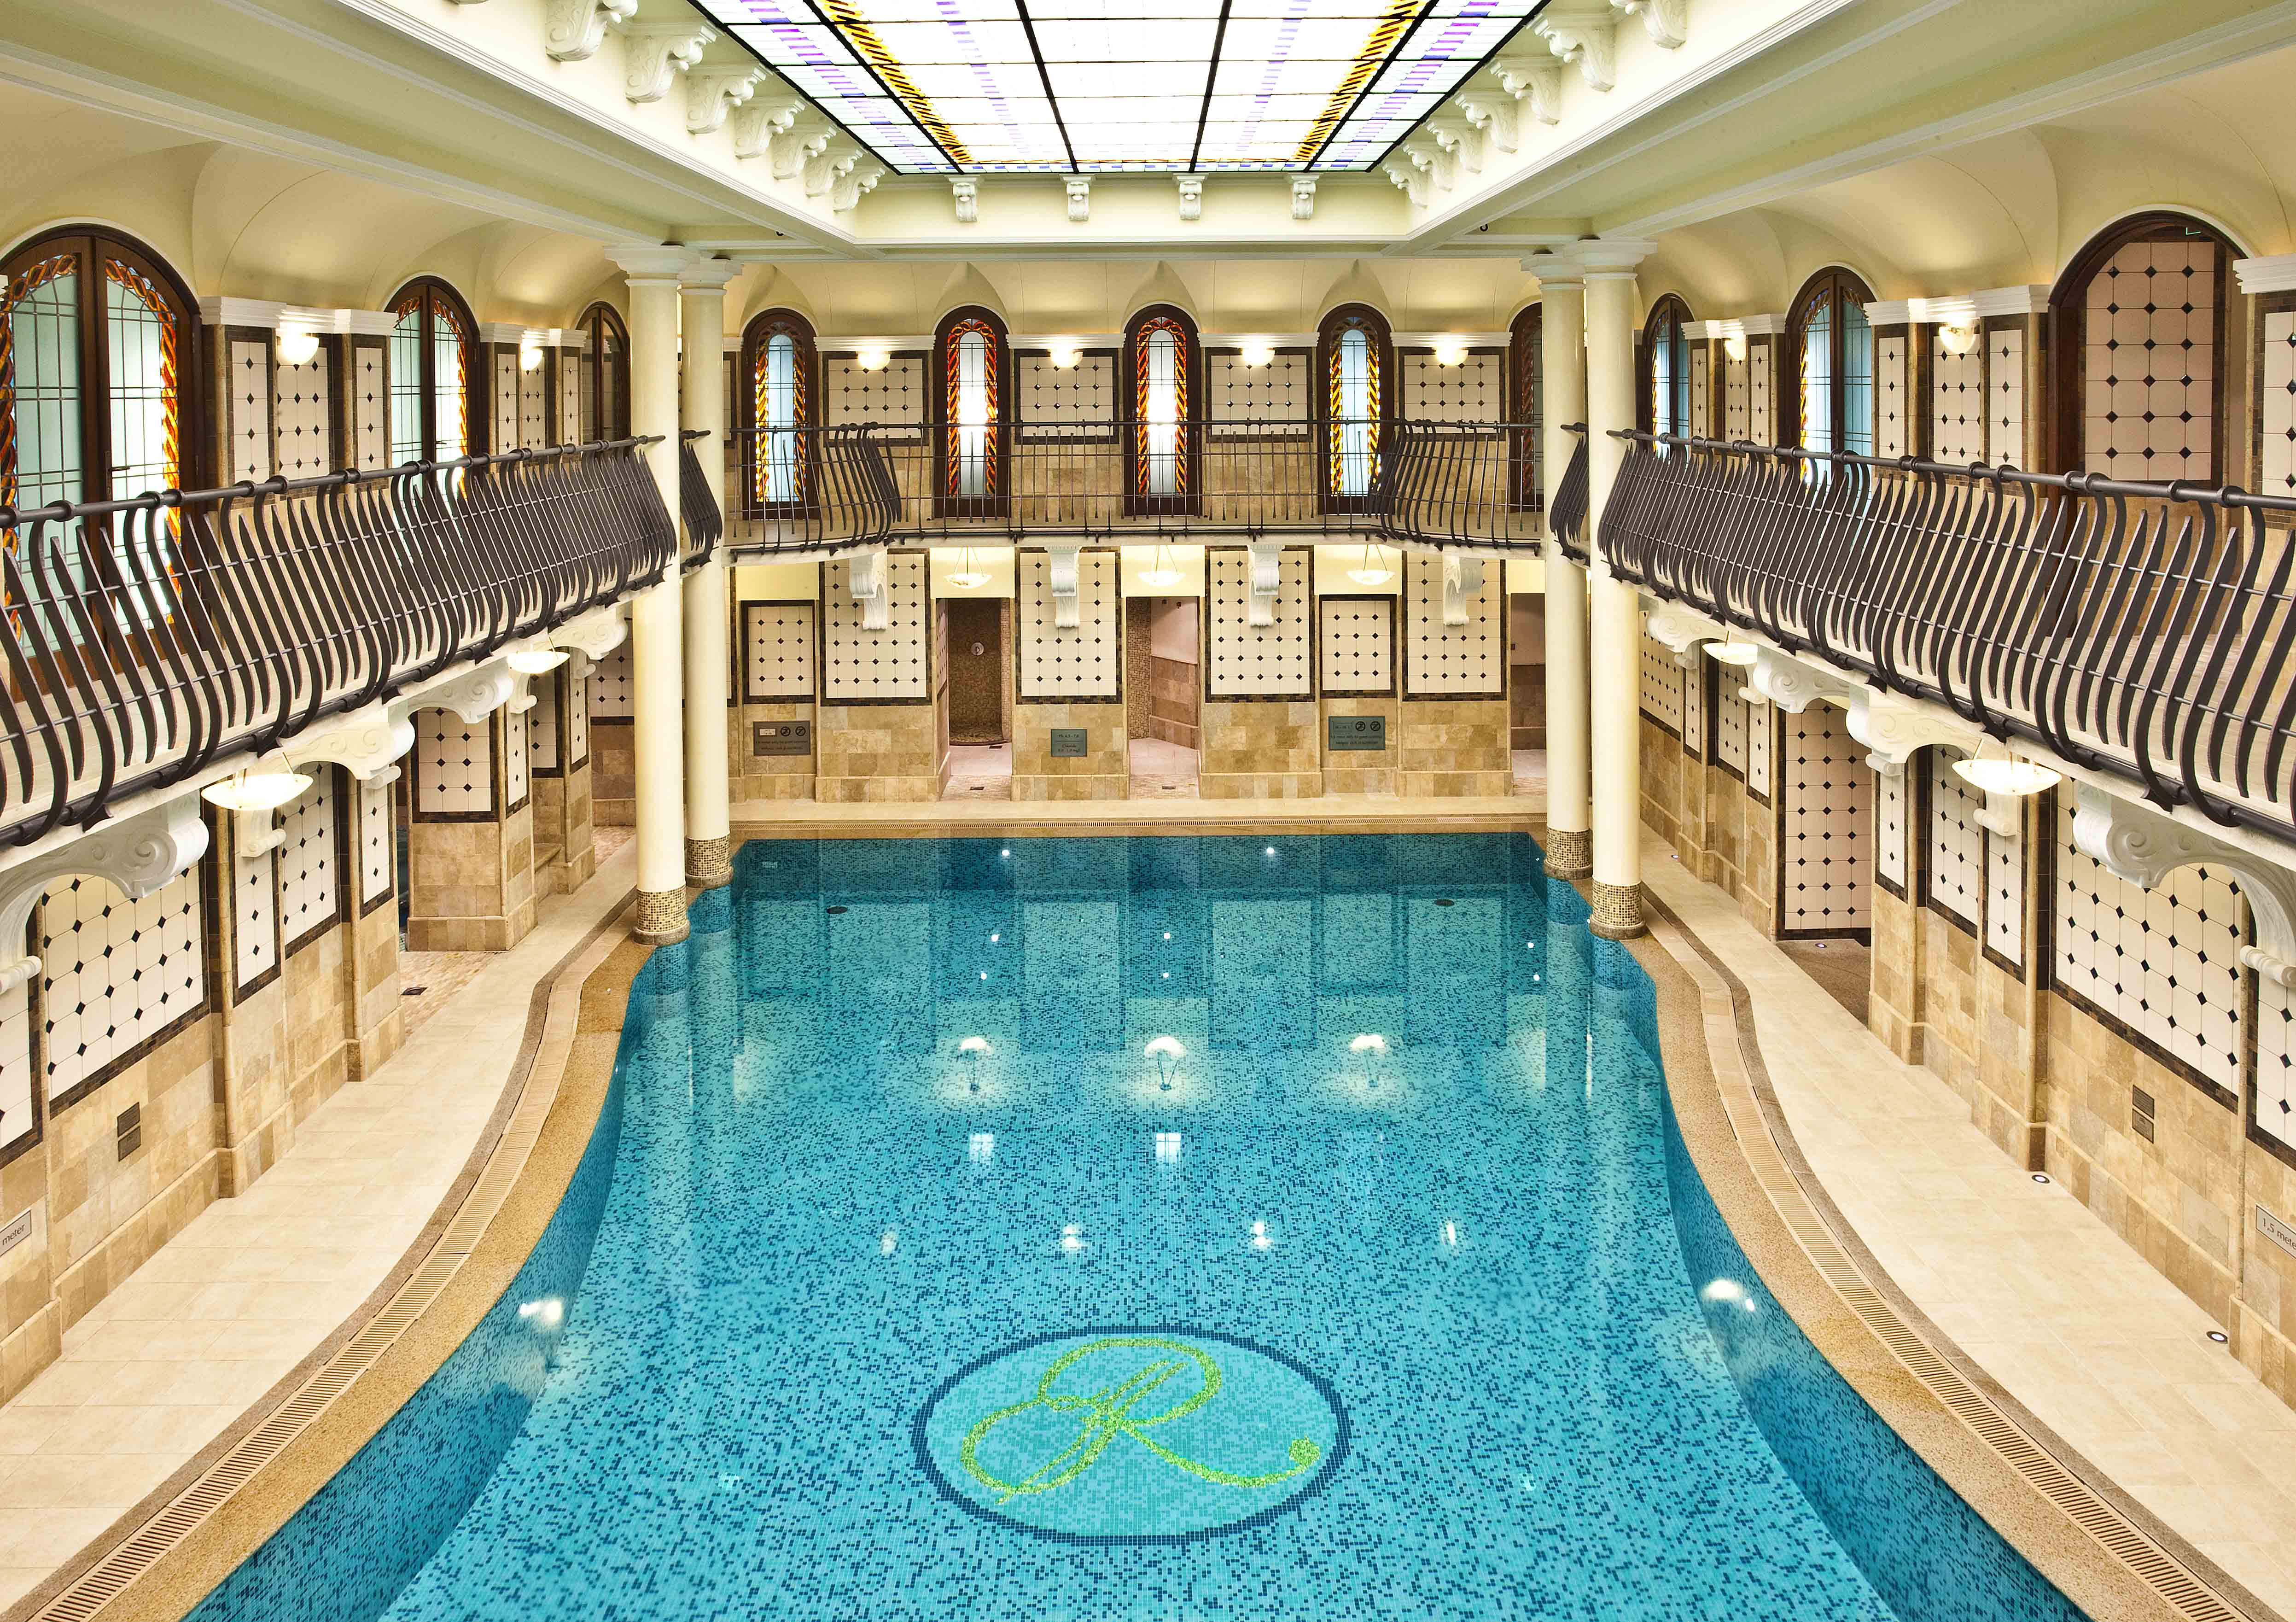 The royal spa at the corinthia budapest luxury travelers guide for A list salon budapest